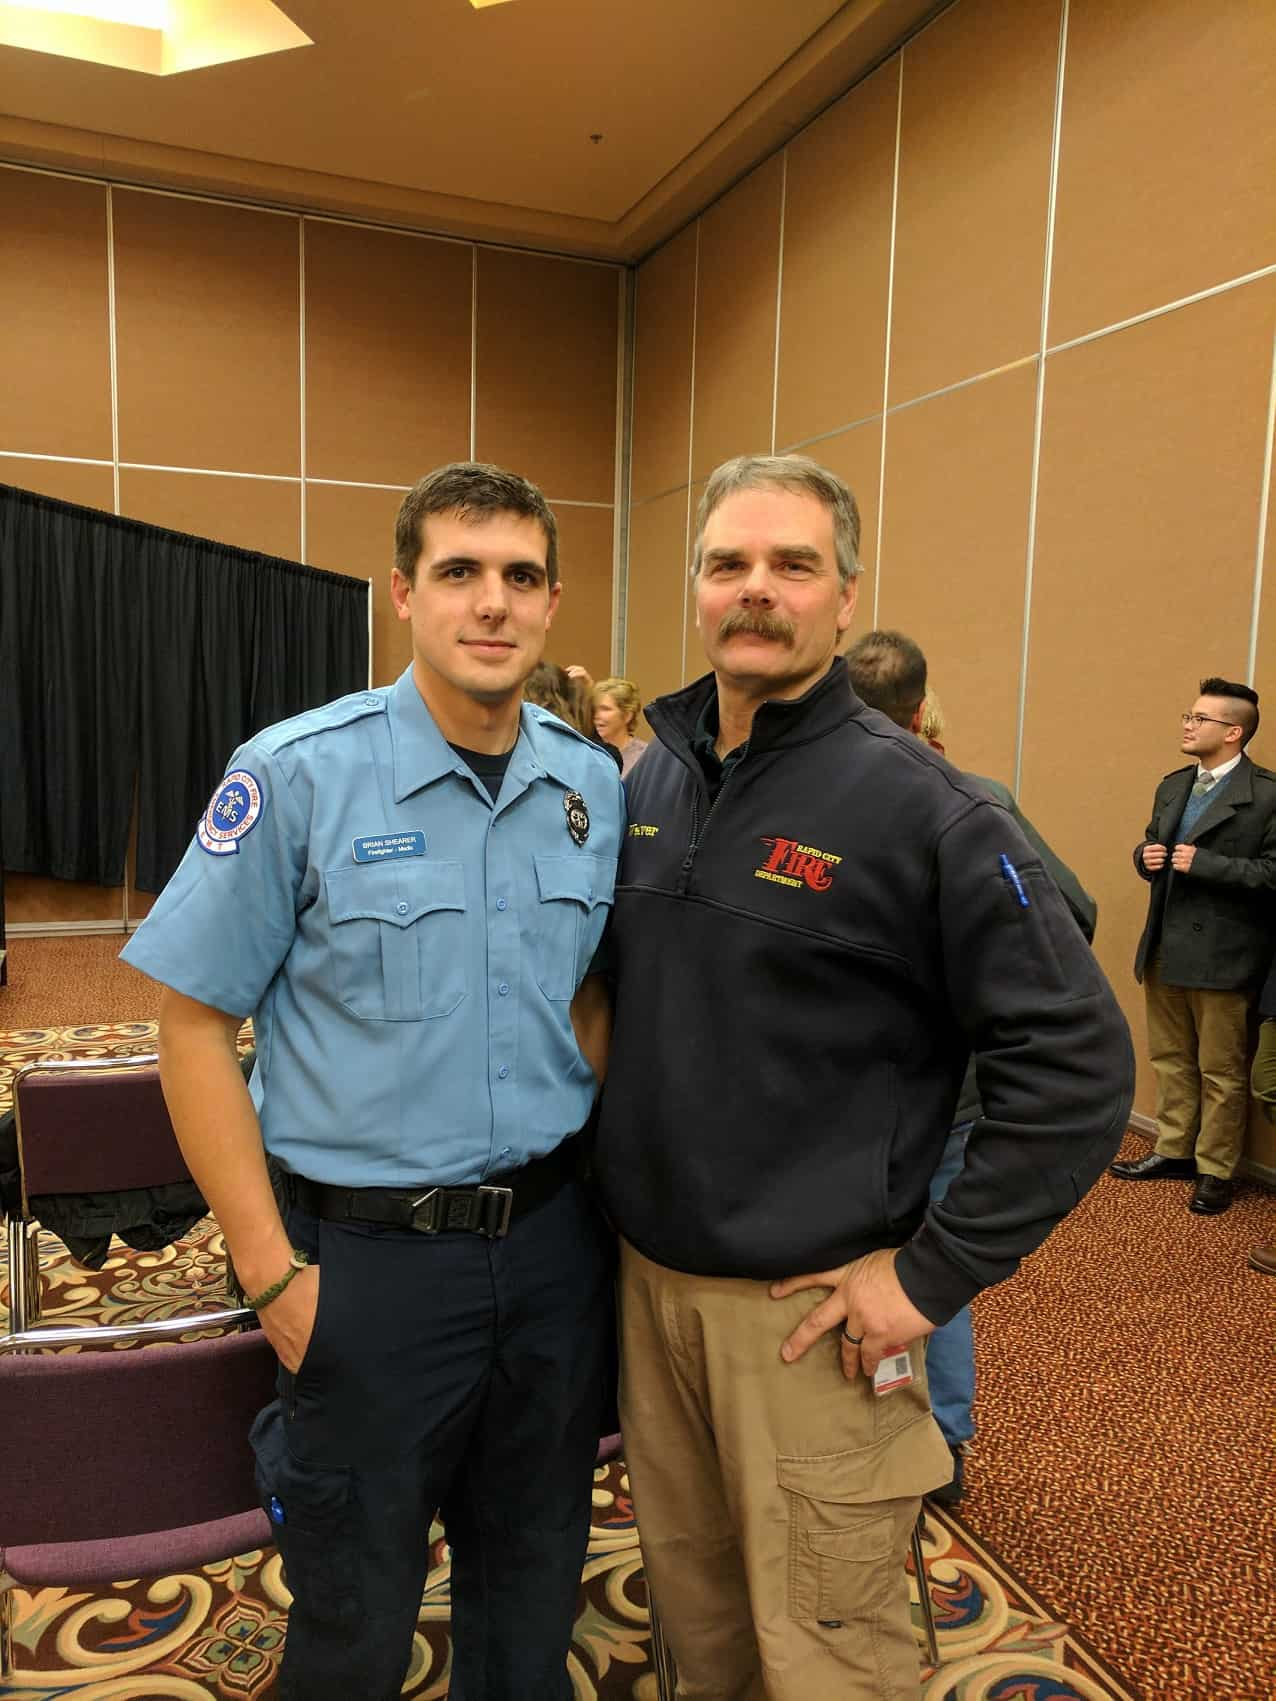 Brian and Tim at Brian's Fire Academy graduation ceremony. Credit: Tim Weaver